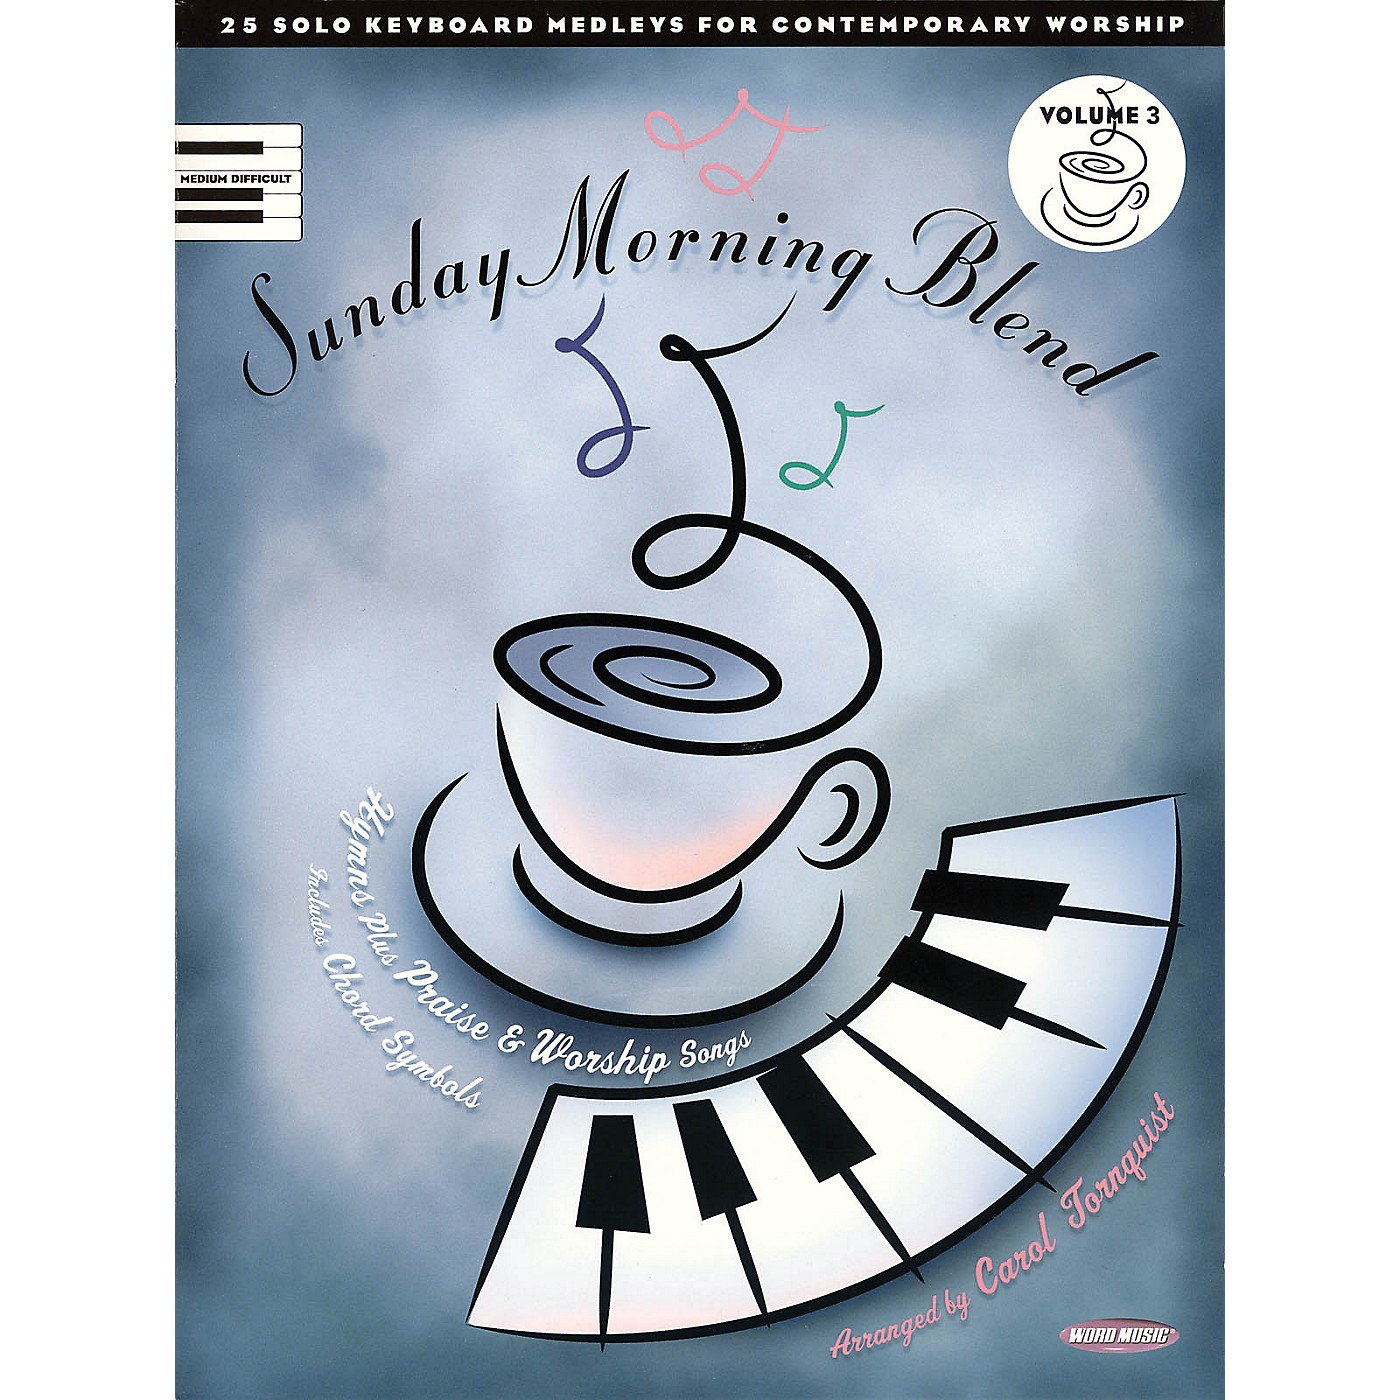 Word Music Sunday Morning Blend - Volume 3 (25 Solo Keyboard Medleys for Contemporary Worship) by Carol Tornquist thumbnail